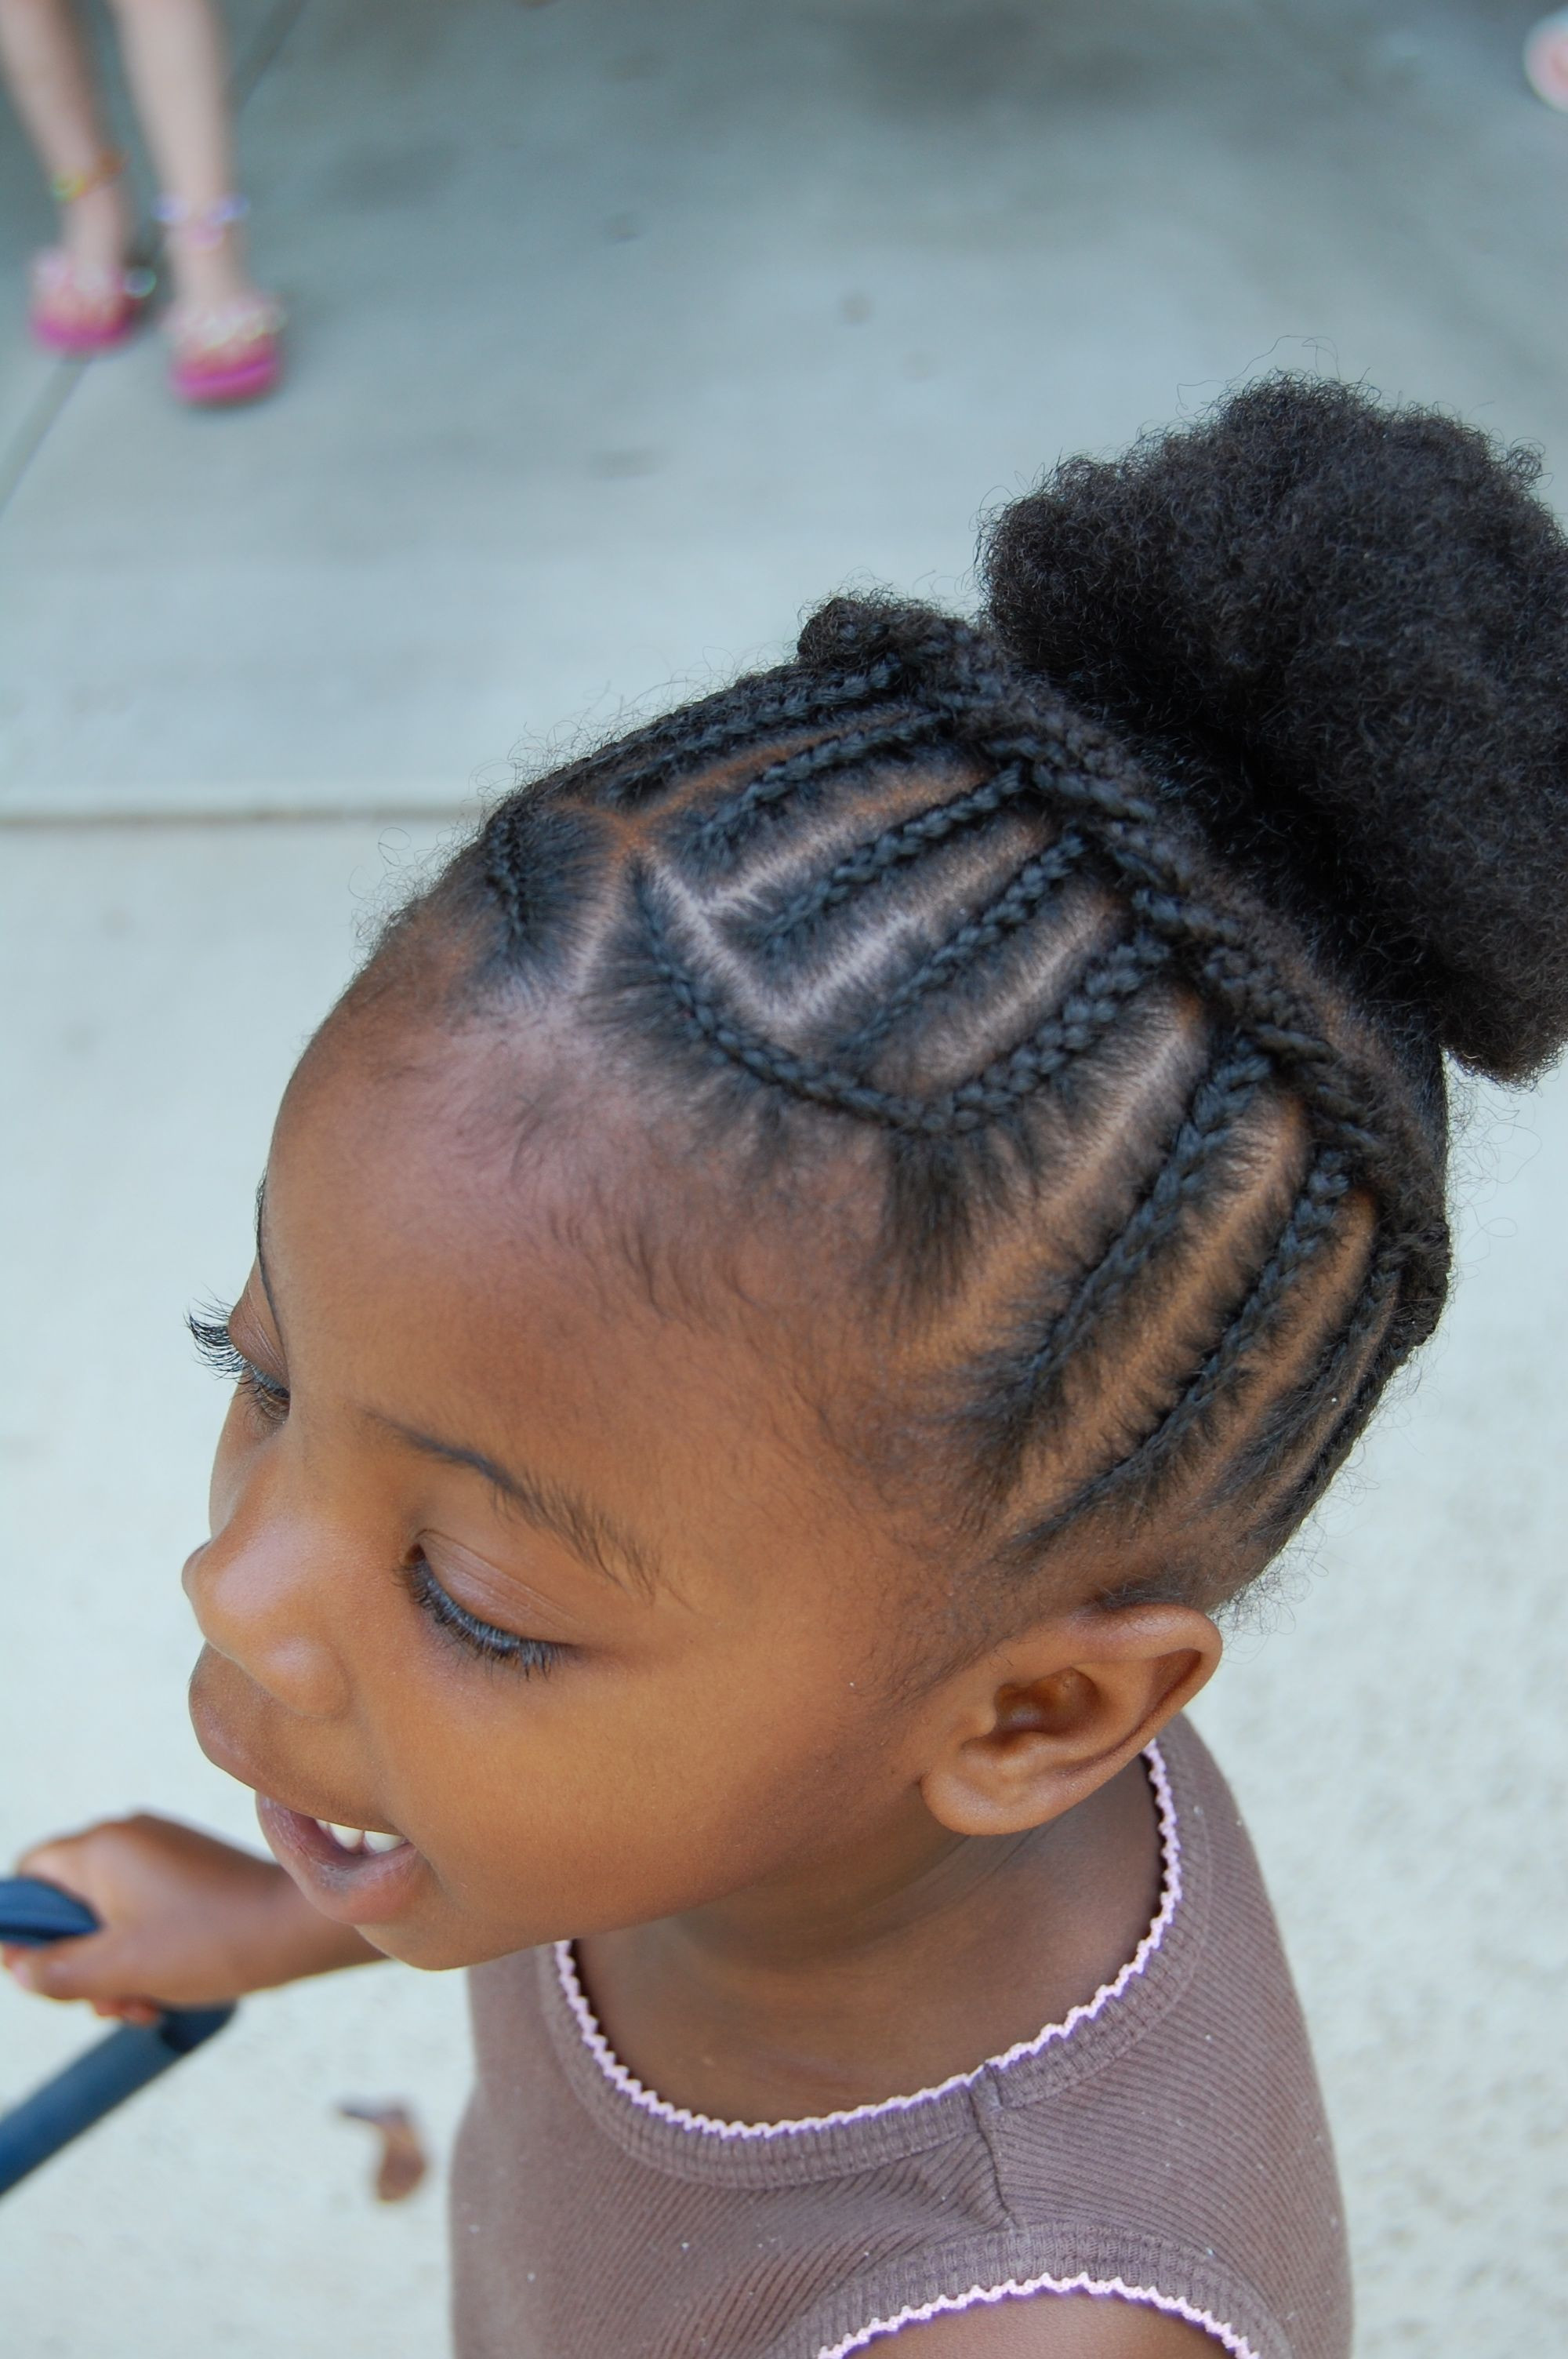 Best ideas about Natural Hairstyles Braids . Save or Pin African Princess Little Black Girl Natural Hair Styles Now.